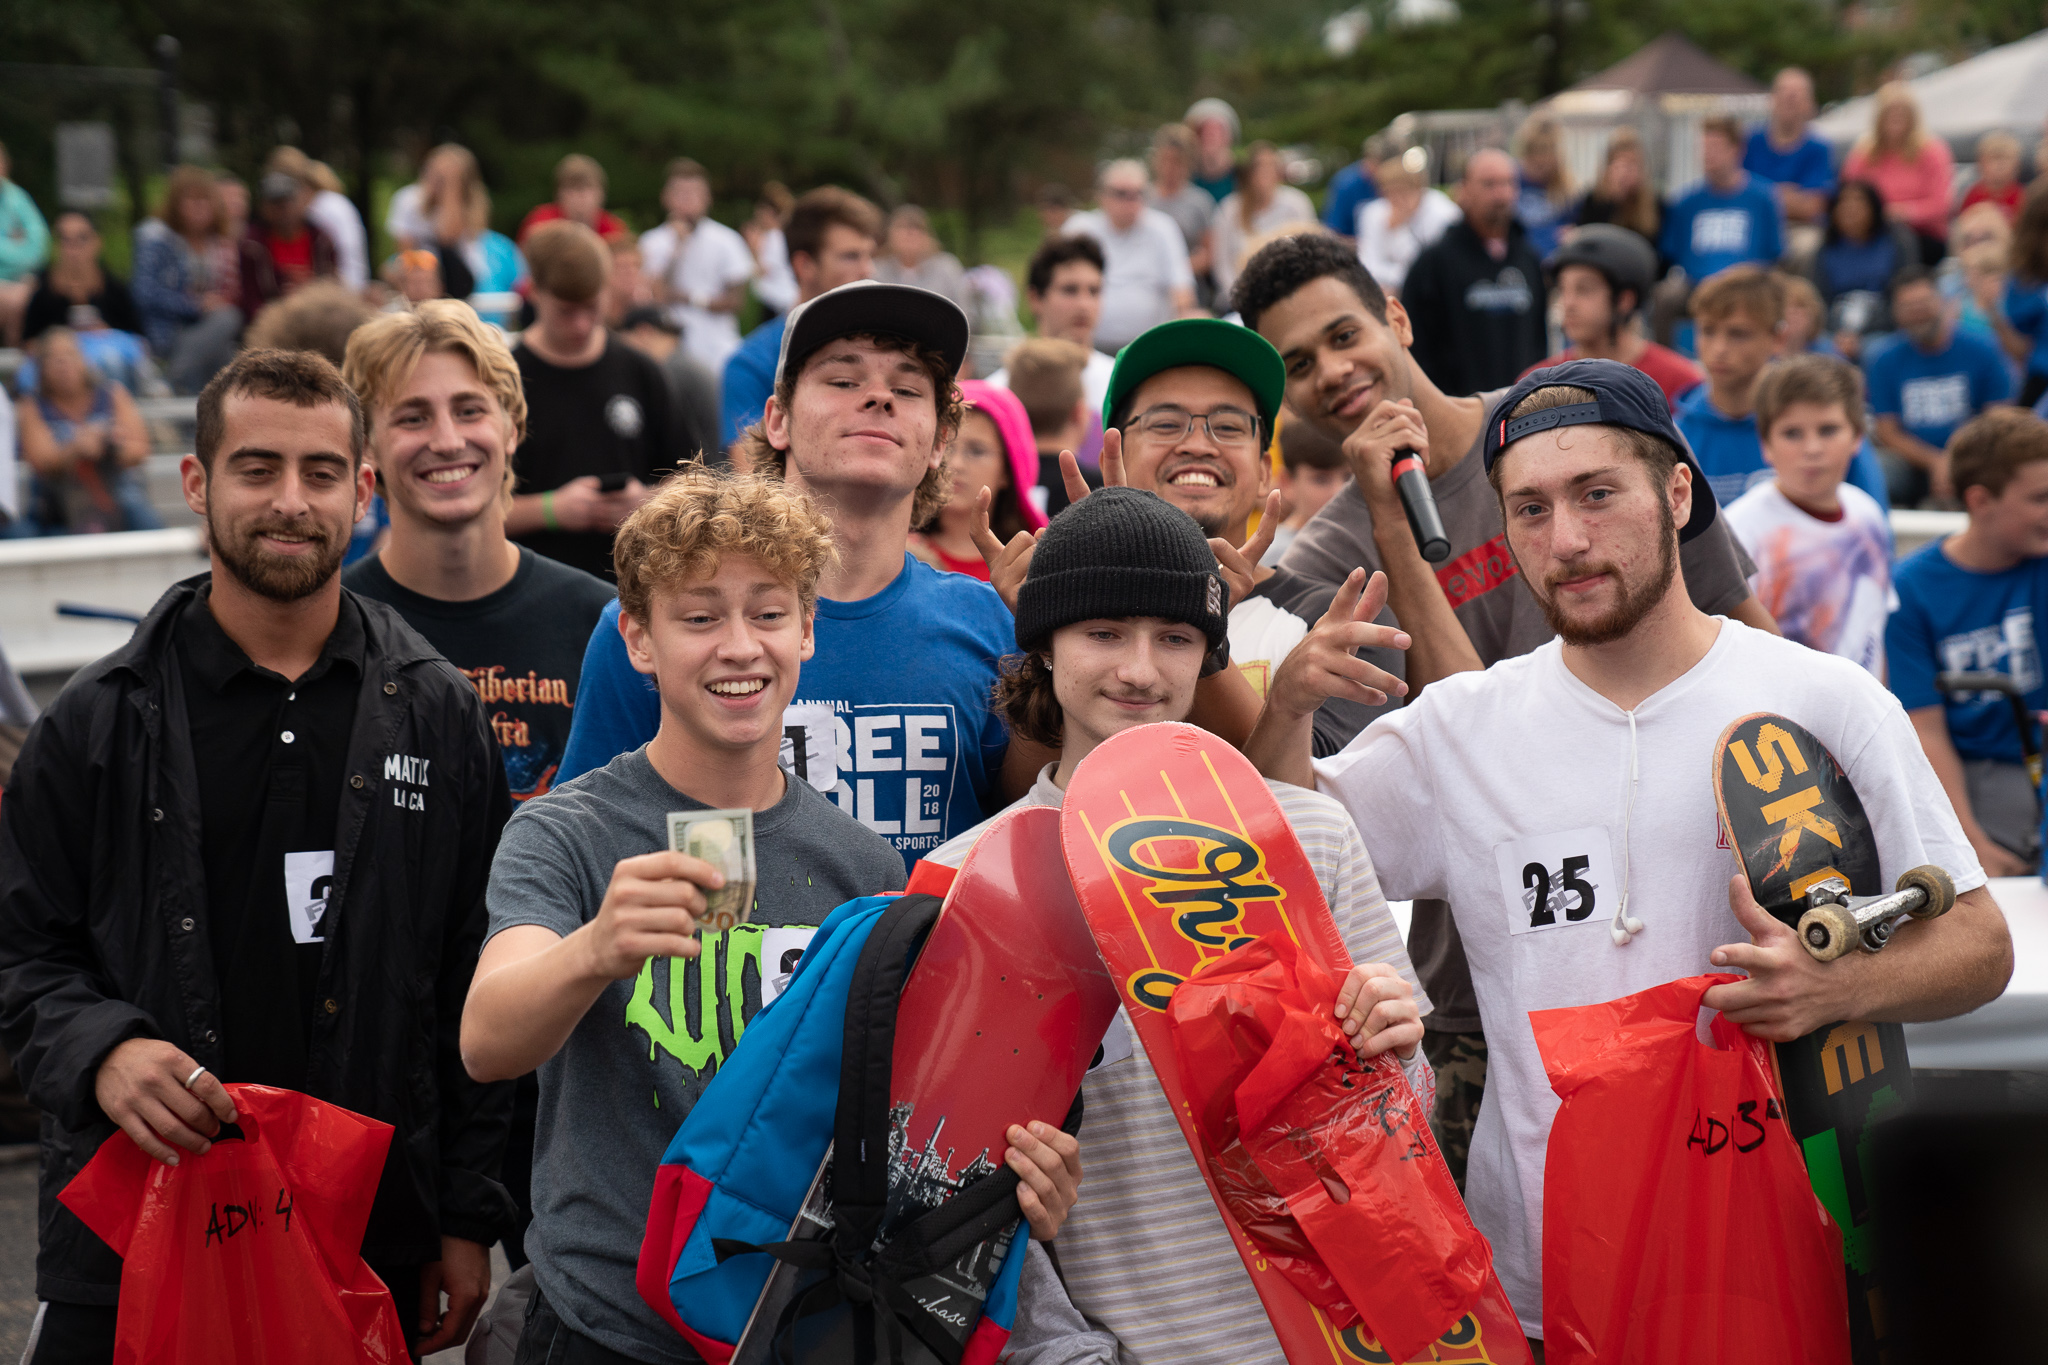 11TH ANNUAL FREE FALL EVENT - SEPTEMBER 28, 2019, 12-5 P.M.REGISTER HERE to compete in the Skateboard, BMX, or 3v3 Basketball comps...VOLUNTEER OR DONATE HERE to make this a great community event for all who attend…